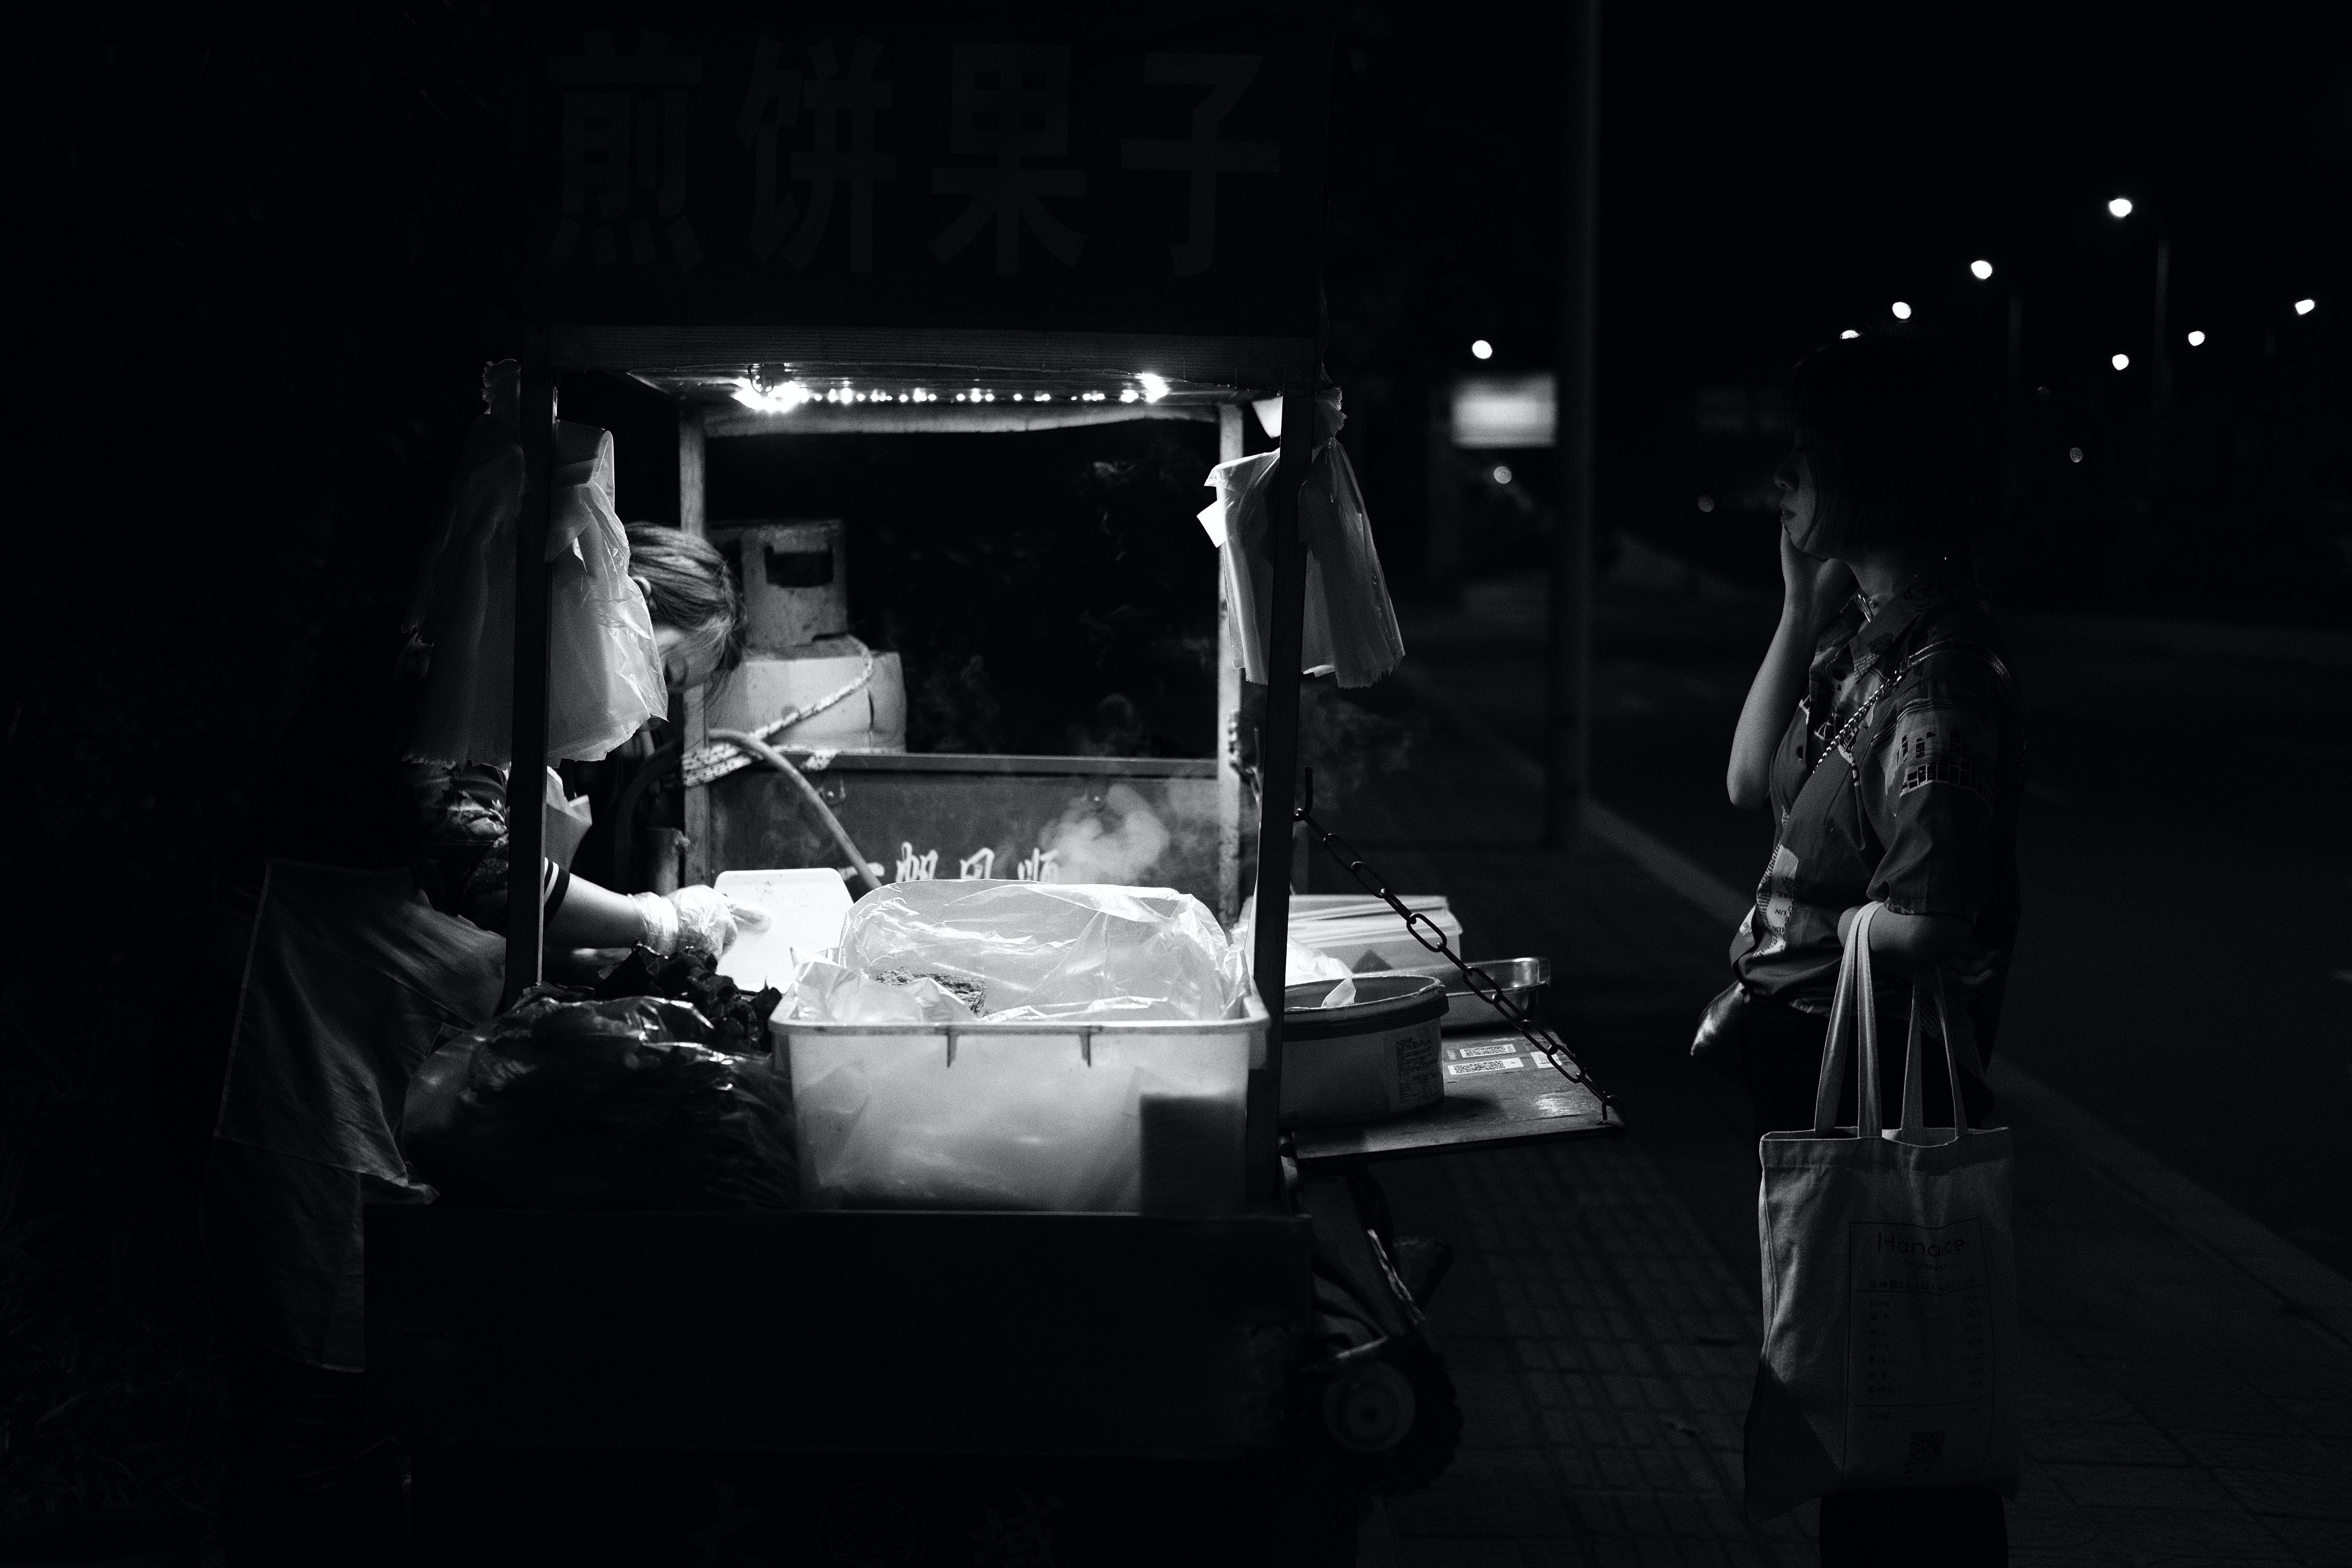 grayscale photo of woman infront of food stall